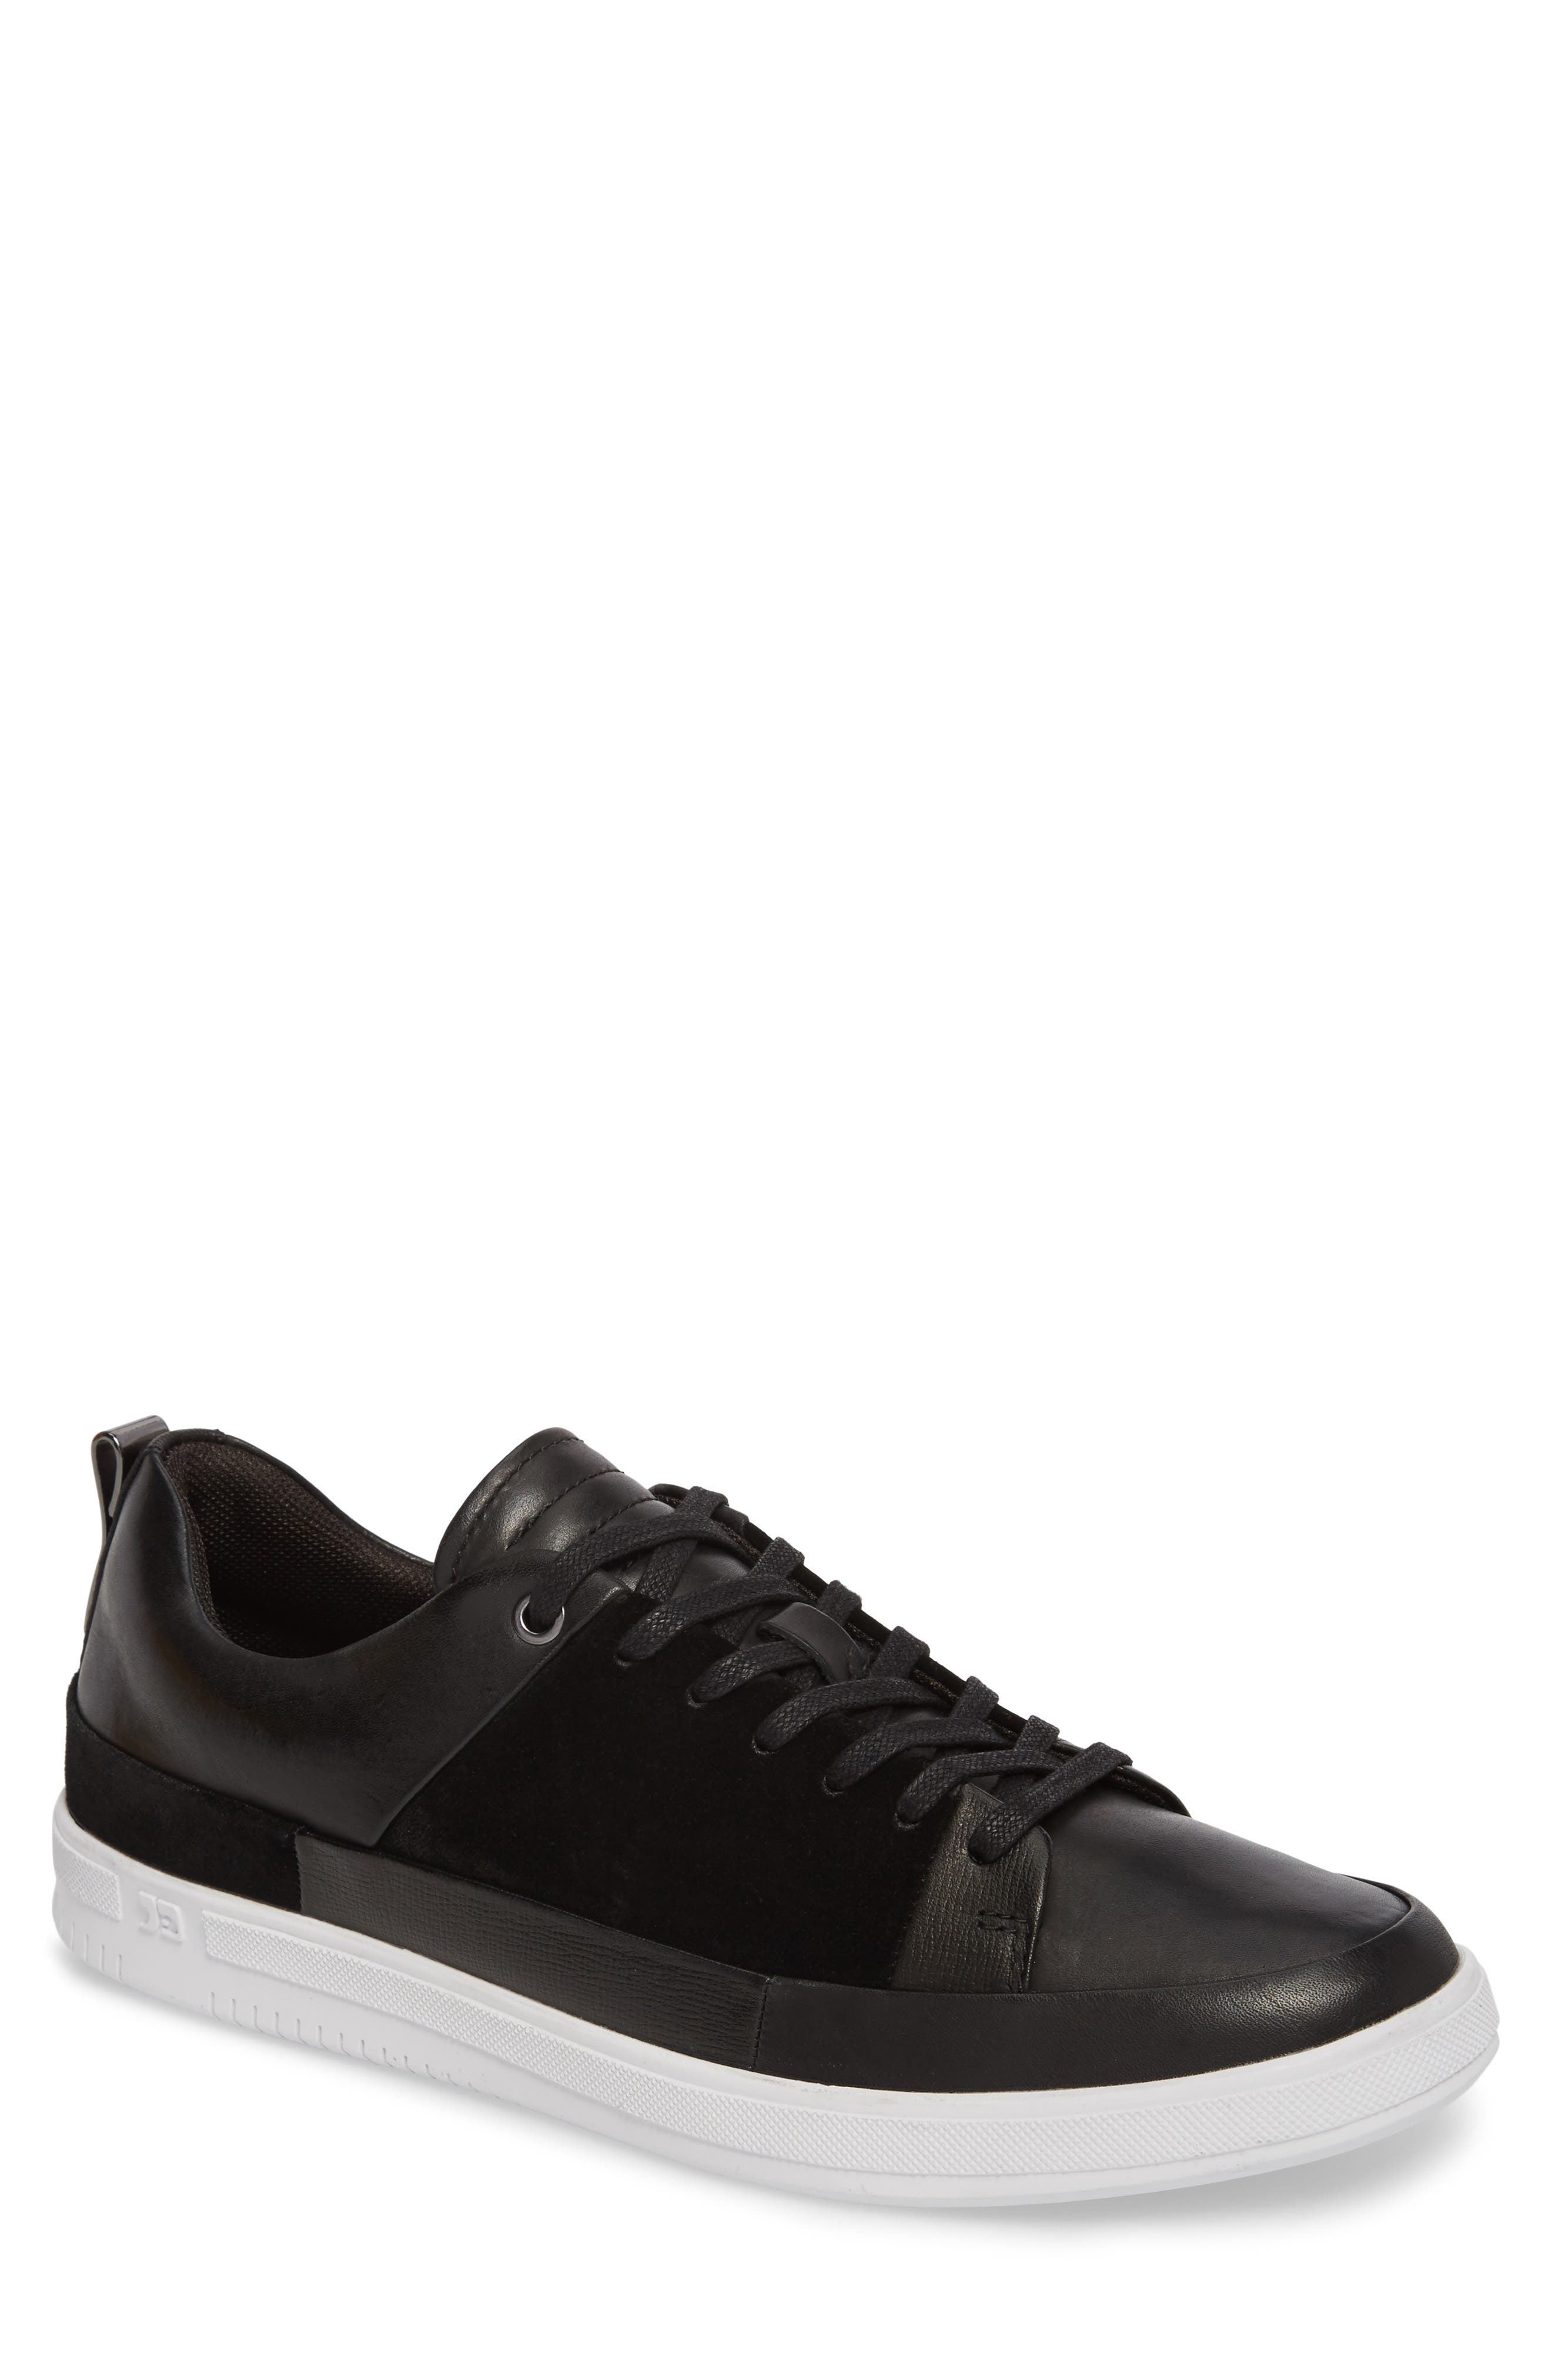 Main Image - Joe's Slick Sneaker (Men)